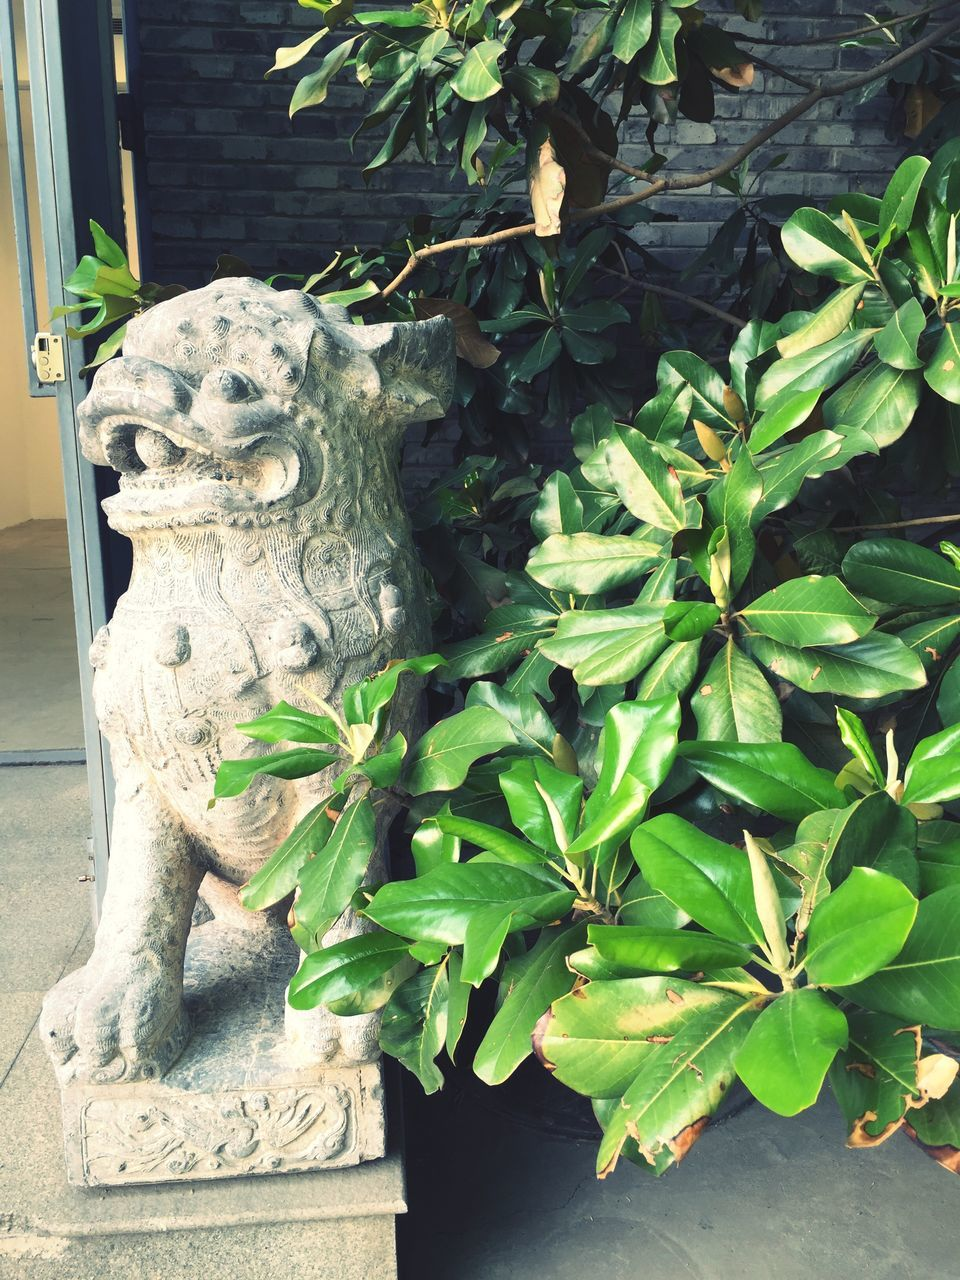 statue, sculpture, animal representation, art and craft, day, no people, outdoors, green color, plant, leaf, growth, dragon, gargoyle, nature, close-up, animal themes, chinese dragon